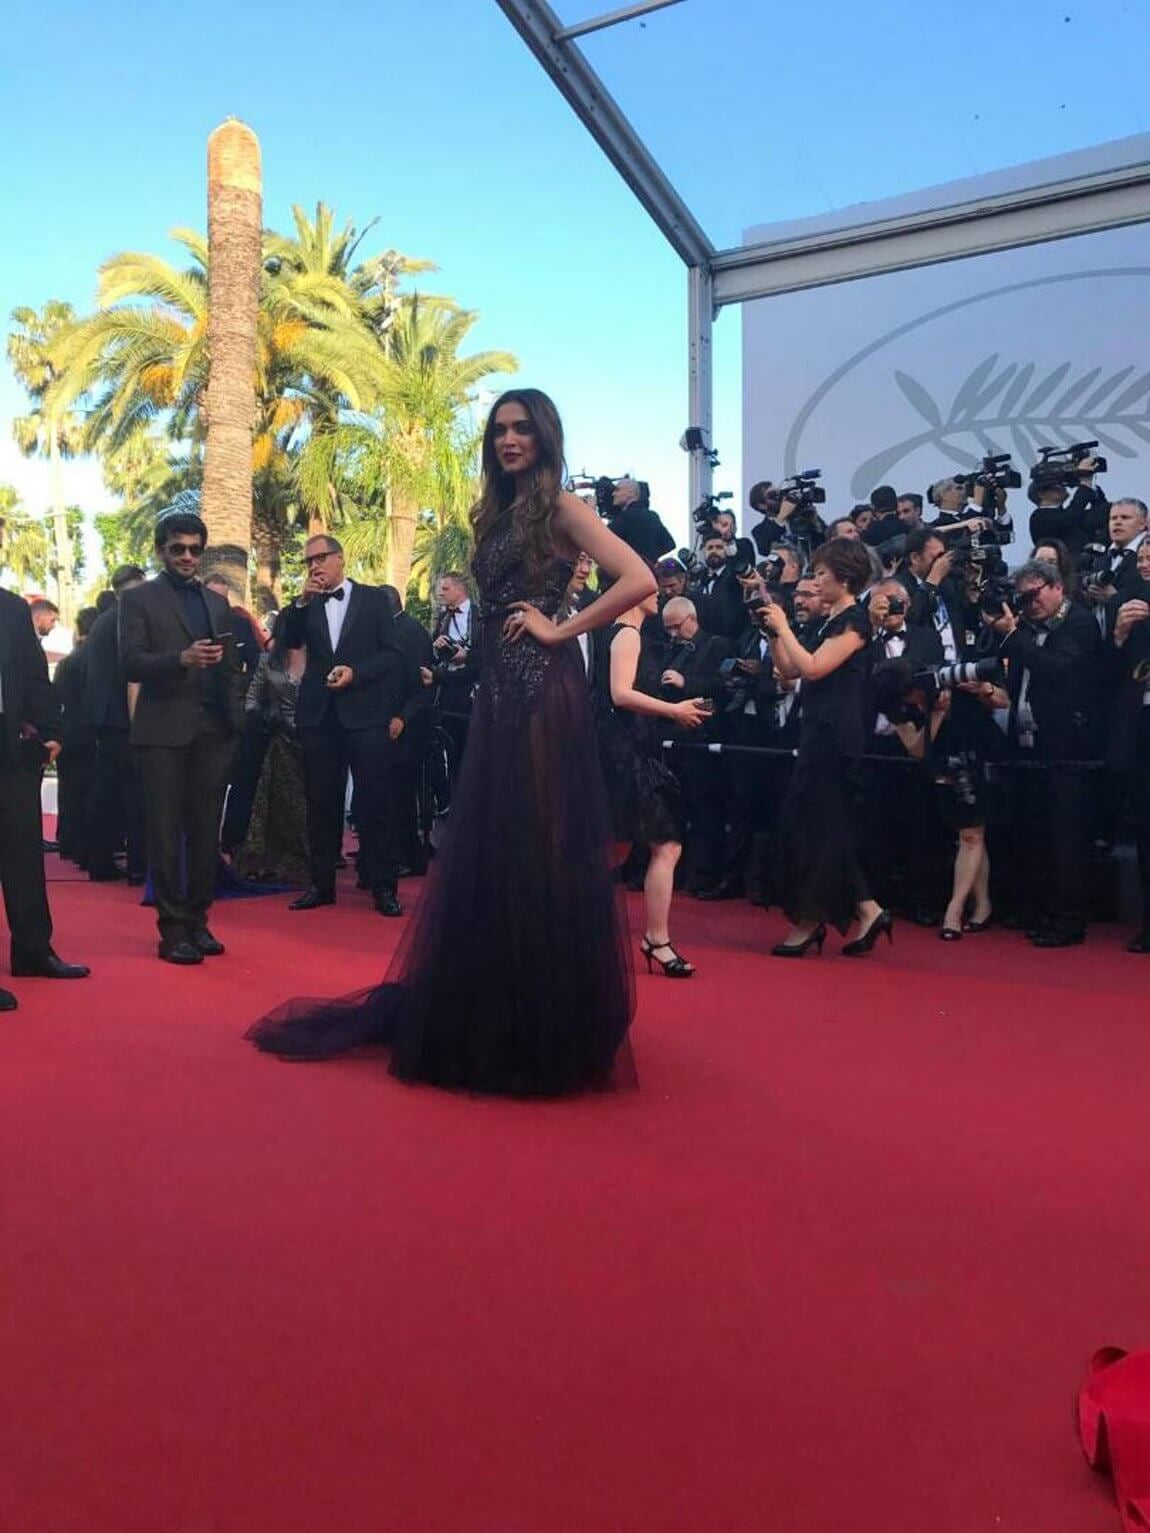 thequint%2F2017-05%2F663671e7-4538-4a7e-a82b-61d068393e29%2FDeepika Padukone on the Cannes Film Festival Red Carpet (1) (1)